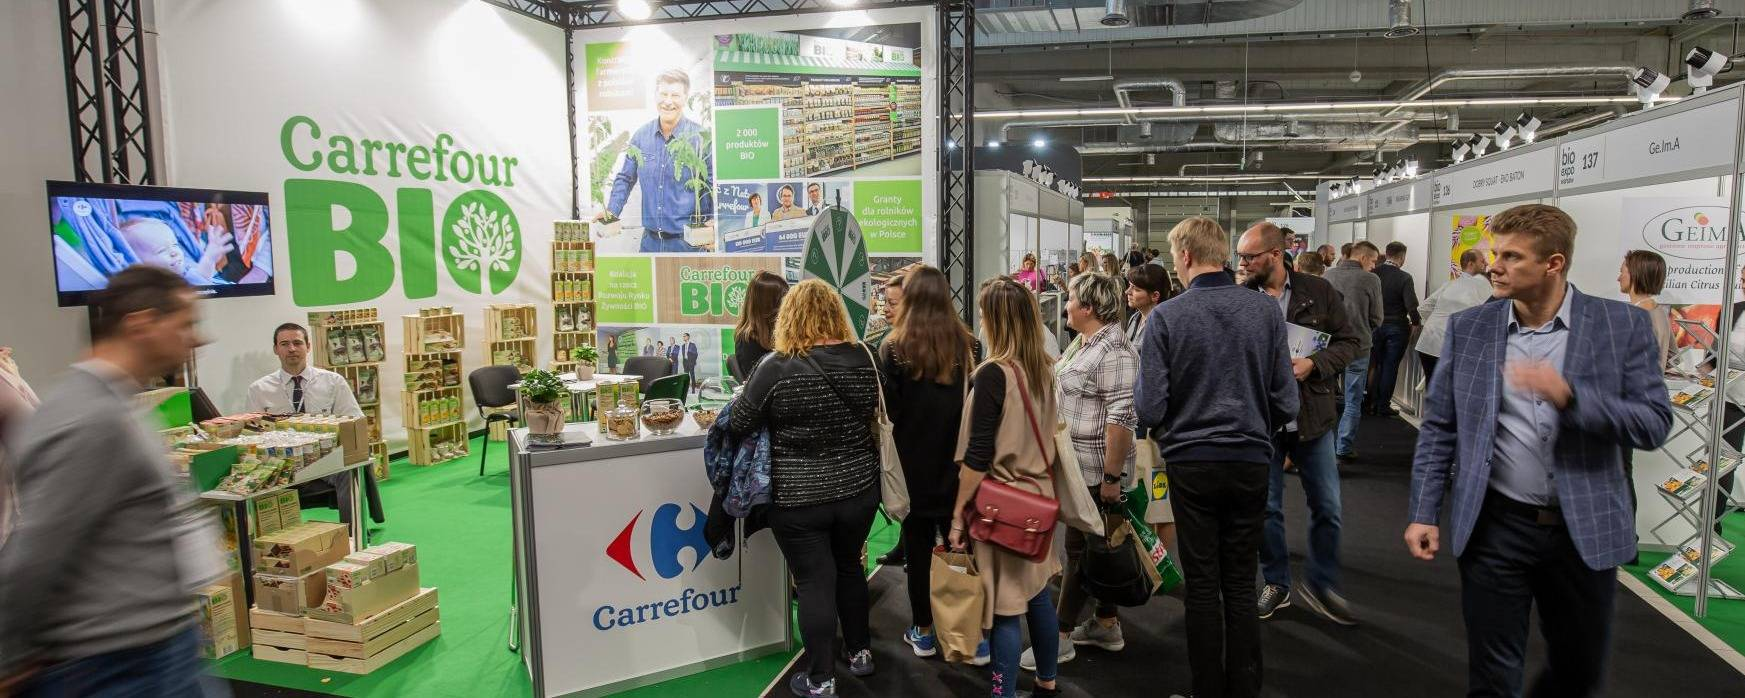 Carrefour BIO products at BIOEXPO